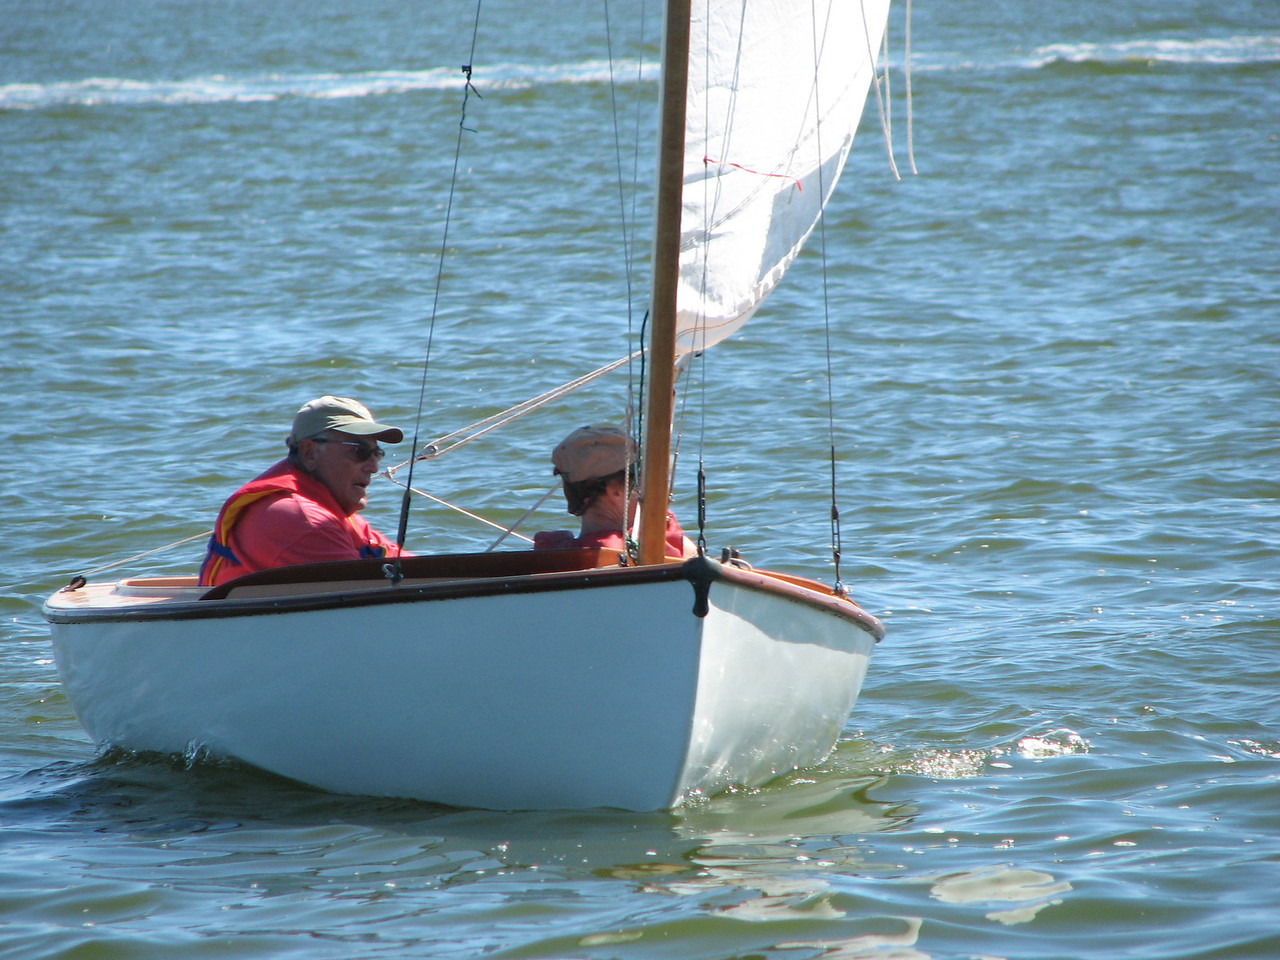 Catboats 2010, Photo by Ken Boyle, SYC, 9.11.10